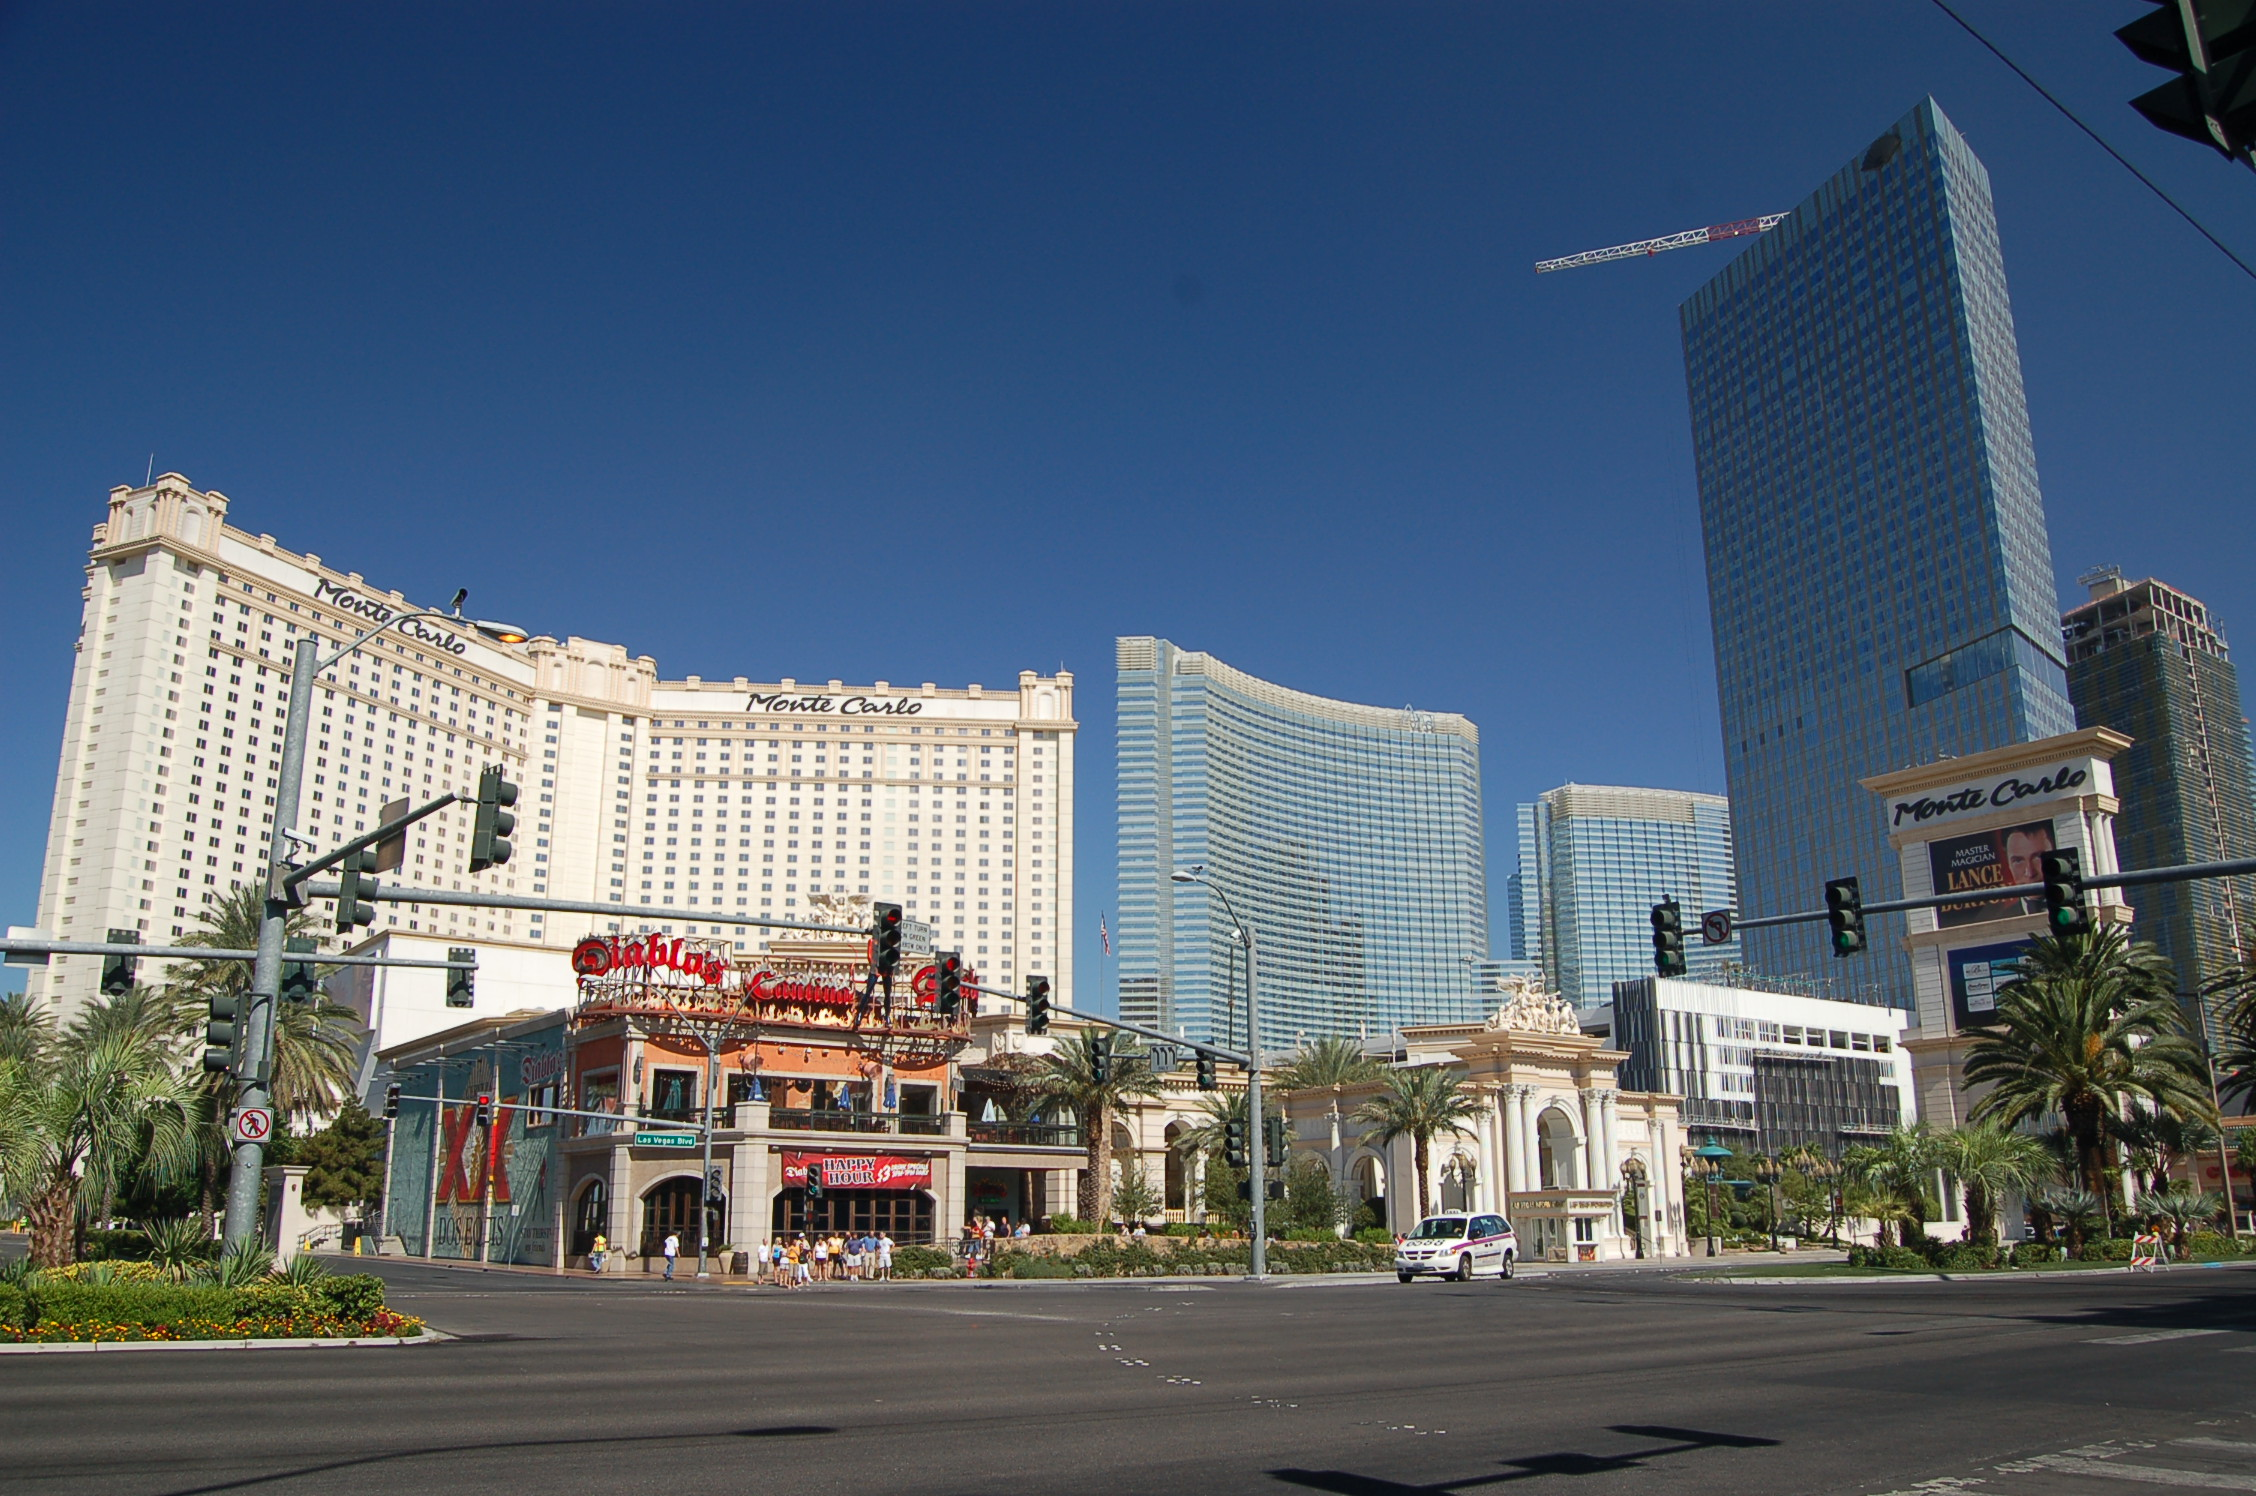 photo #80824: monte carlo resort and diablo's on the las vegas